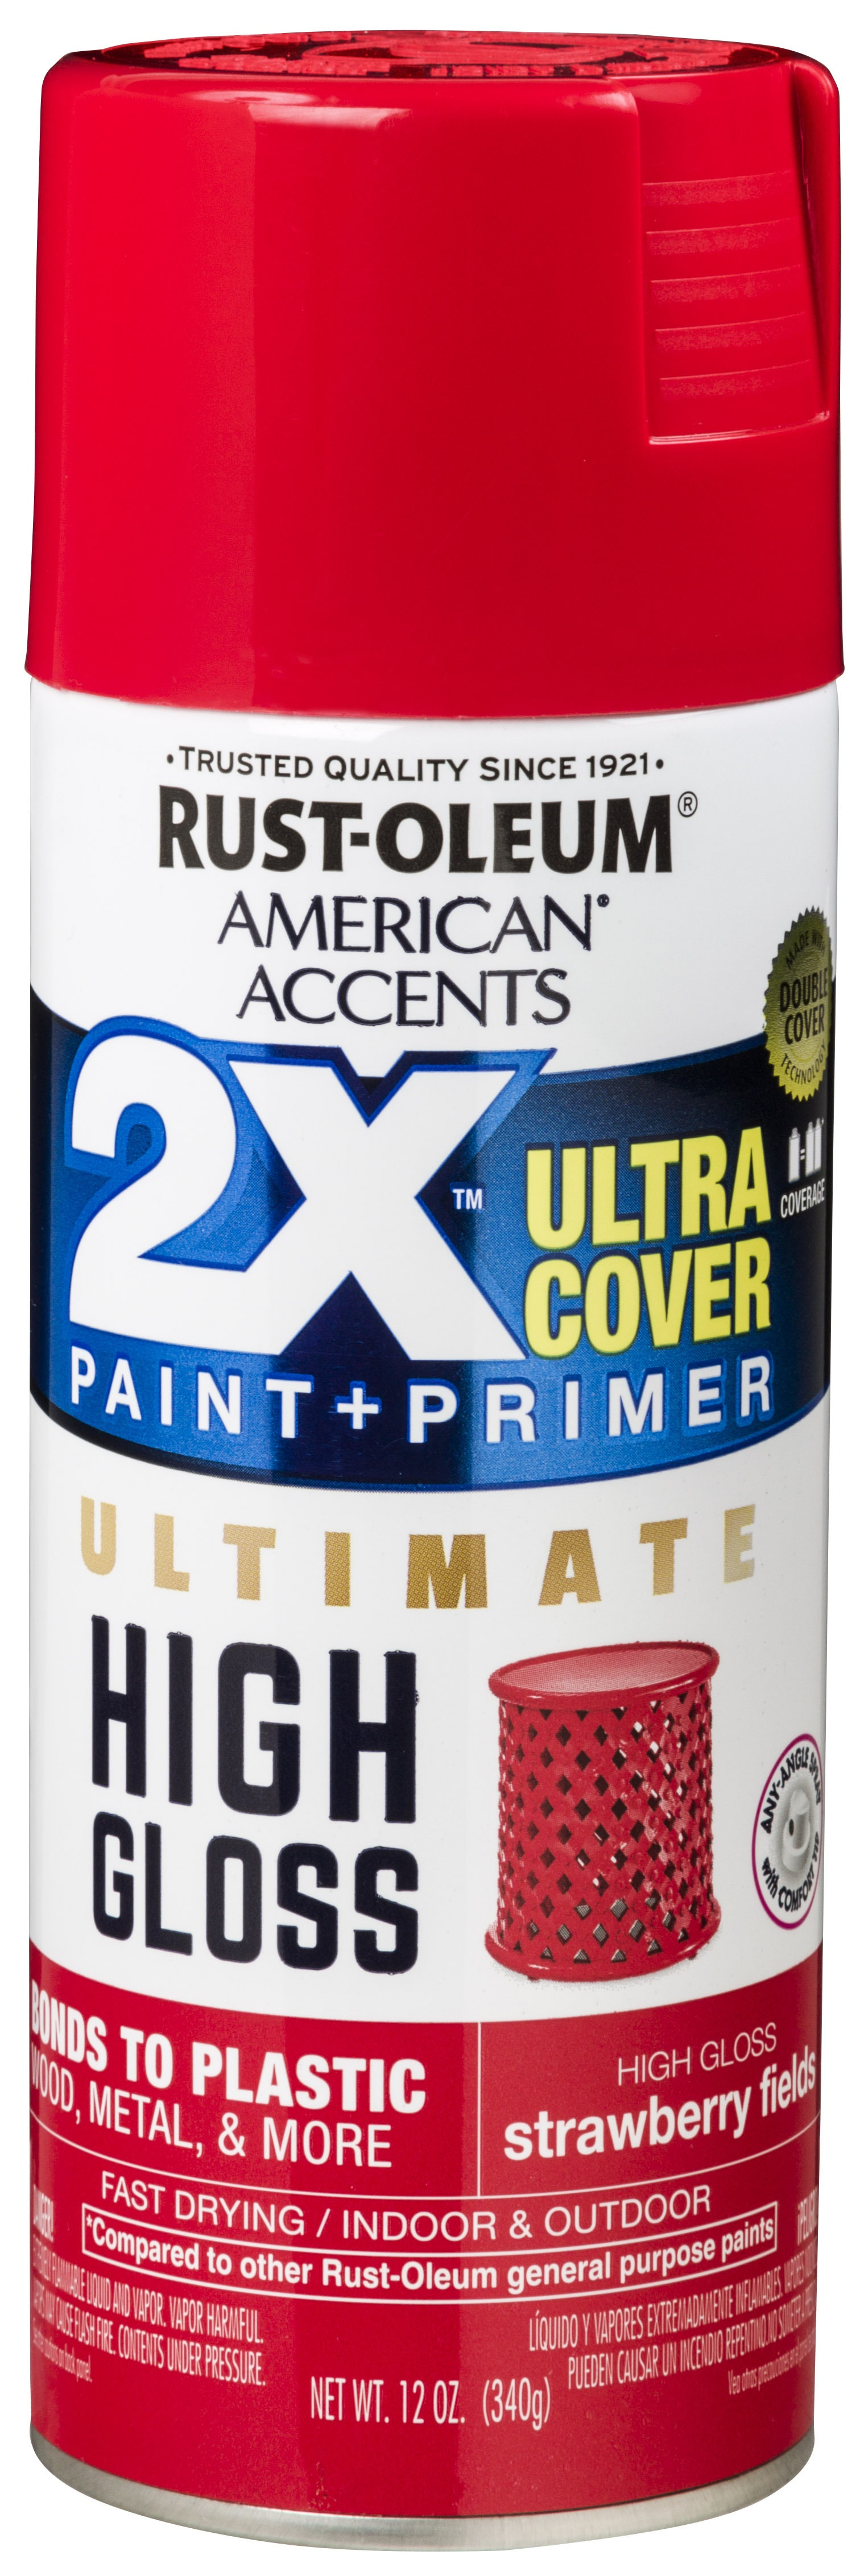 (3 Pack) Rust-Oleum American Accents Ultra Cover 2X Ultimate High Gloss Strawberry Fields Spray Paint and Primer in 1, 12 oz